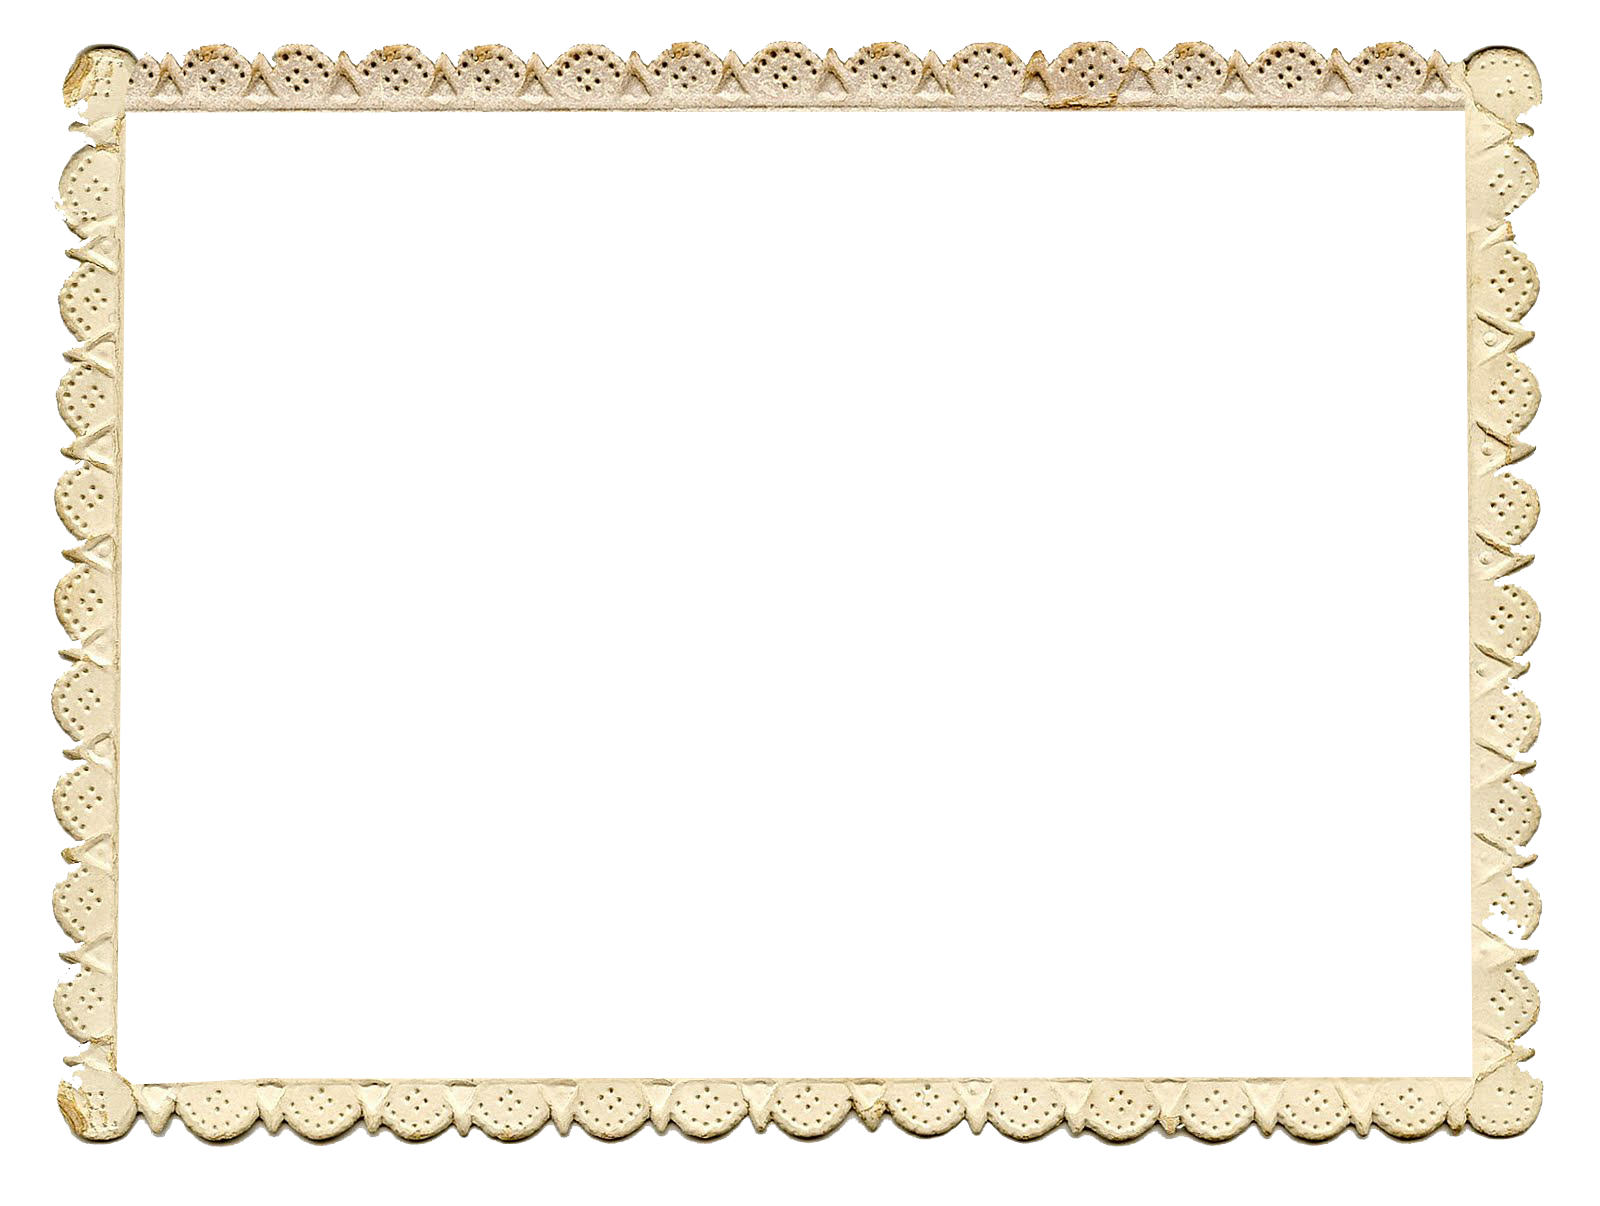 Vintage Border Png | www.imgkid.com - The Image Kid Has It!